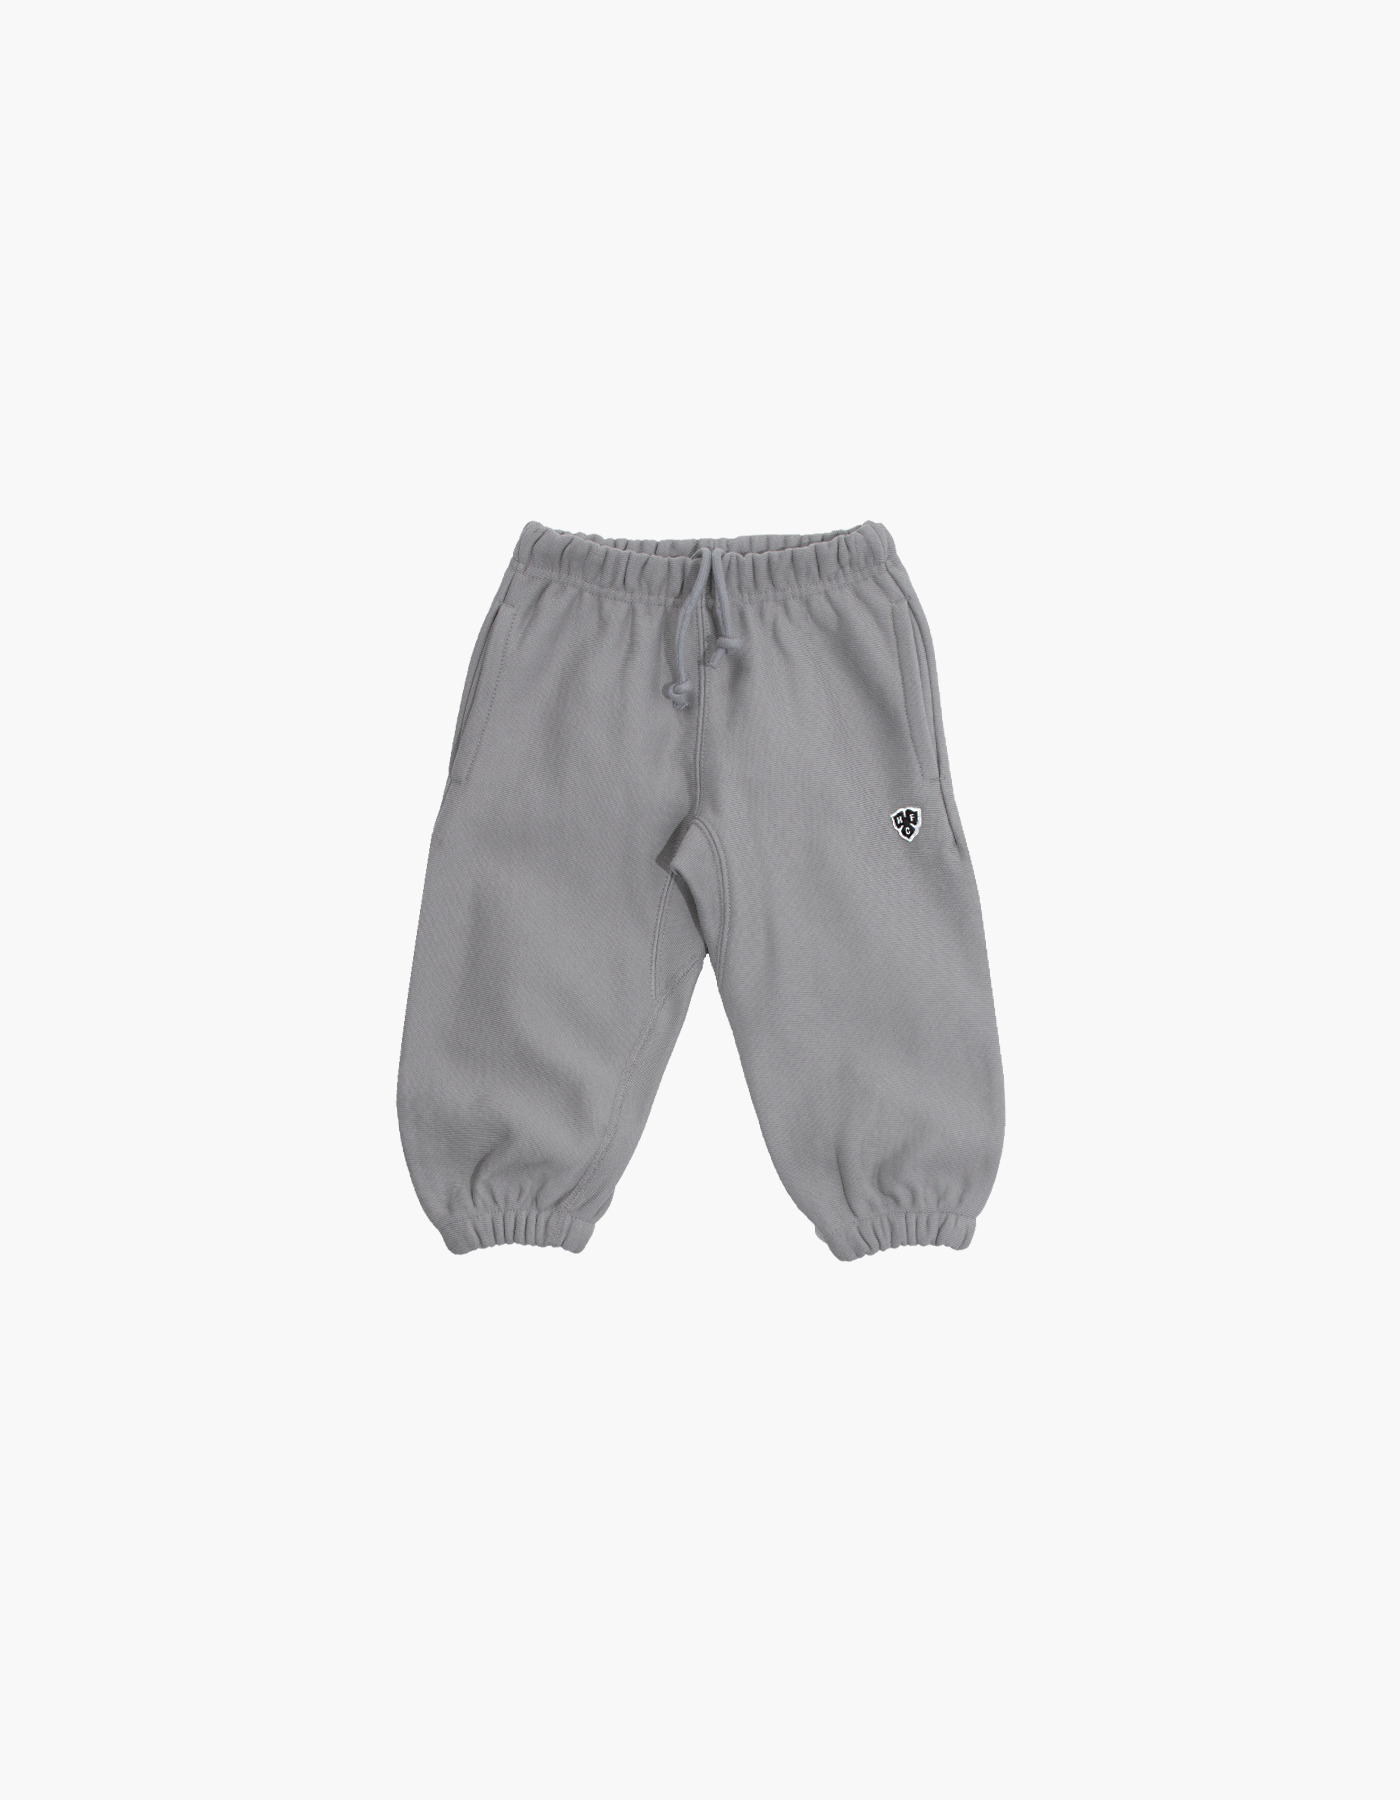 231 KIDS HFC SWEATPANTS / GREY